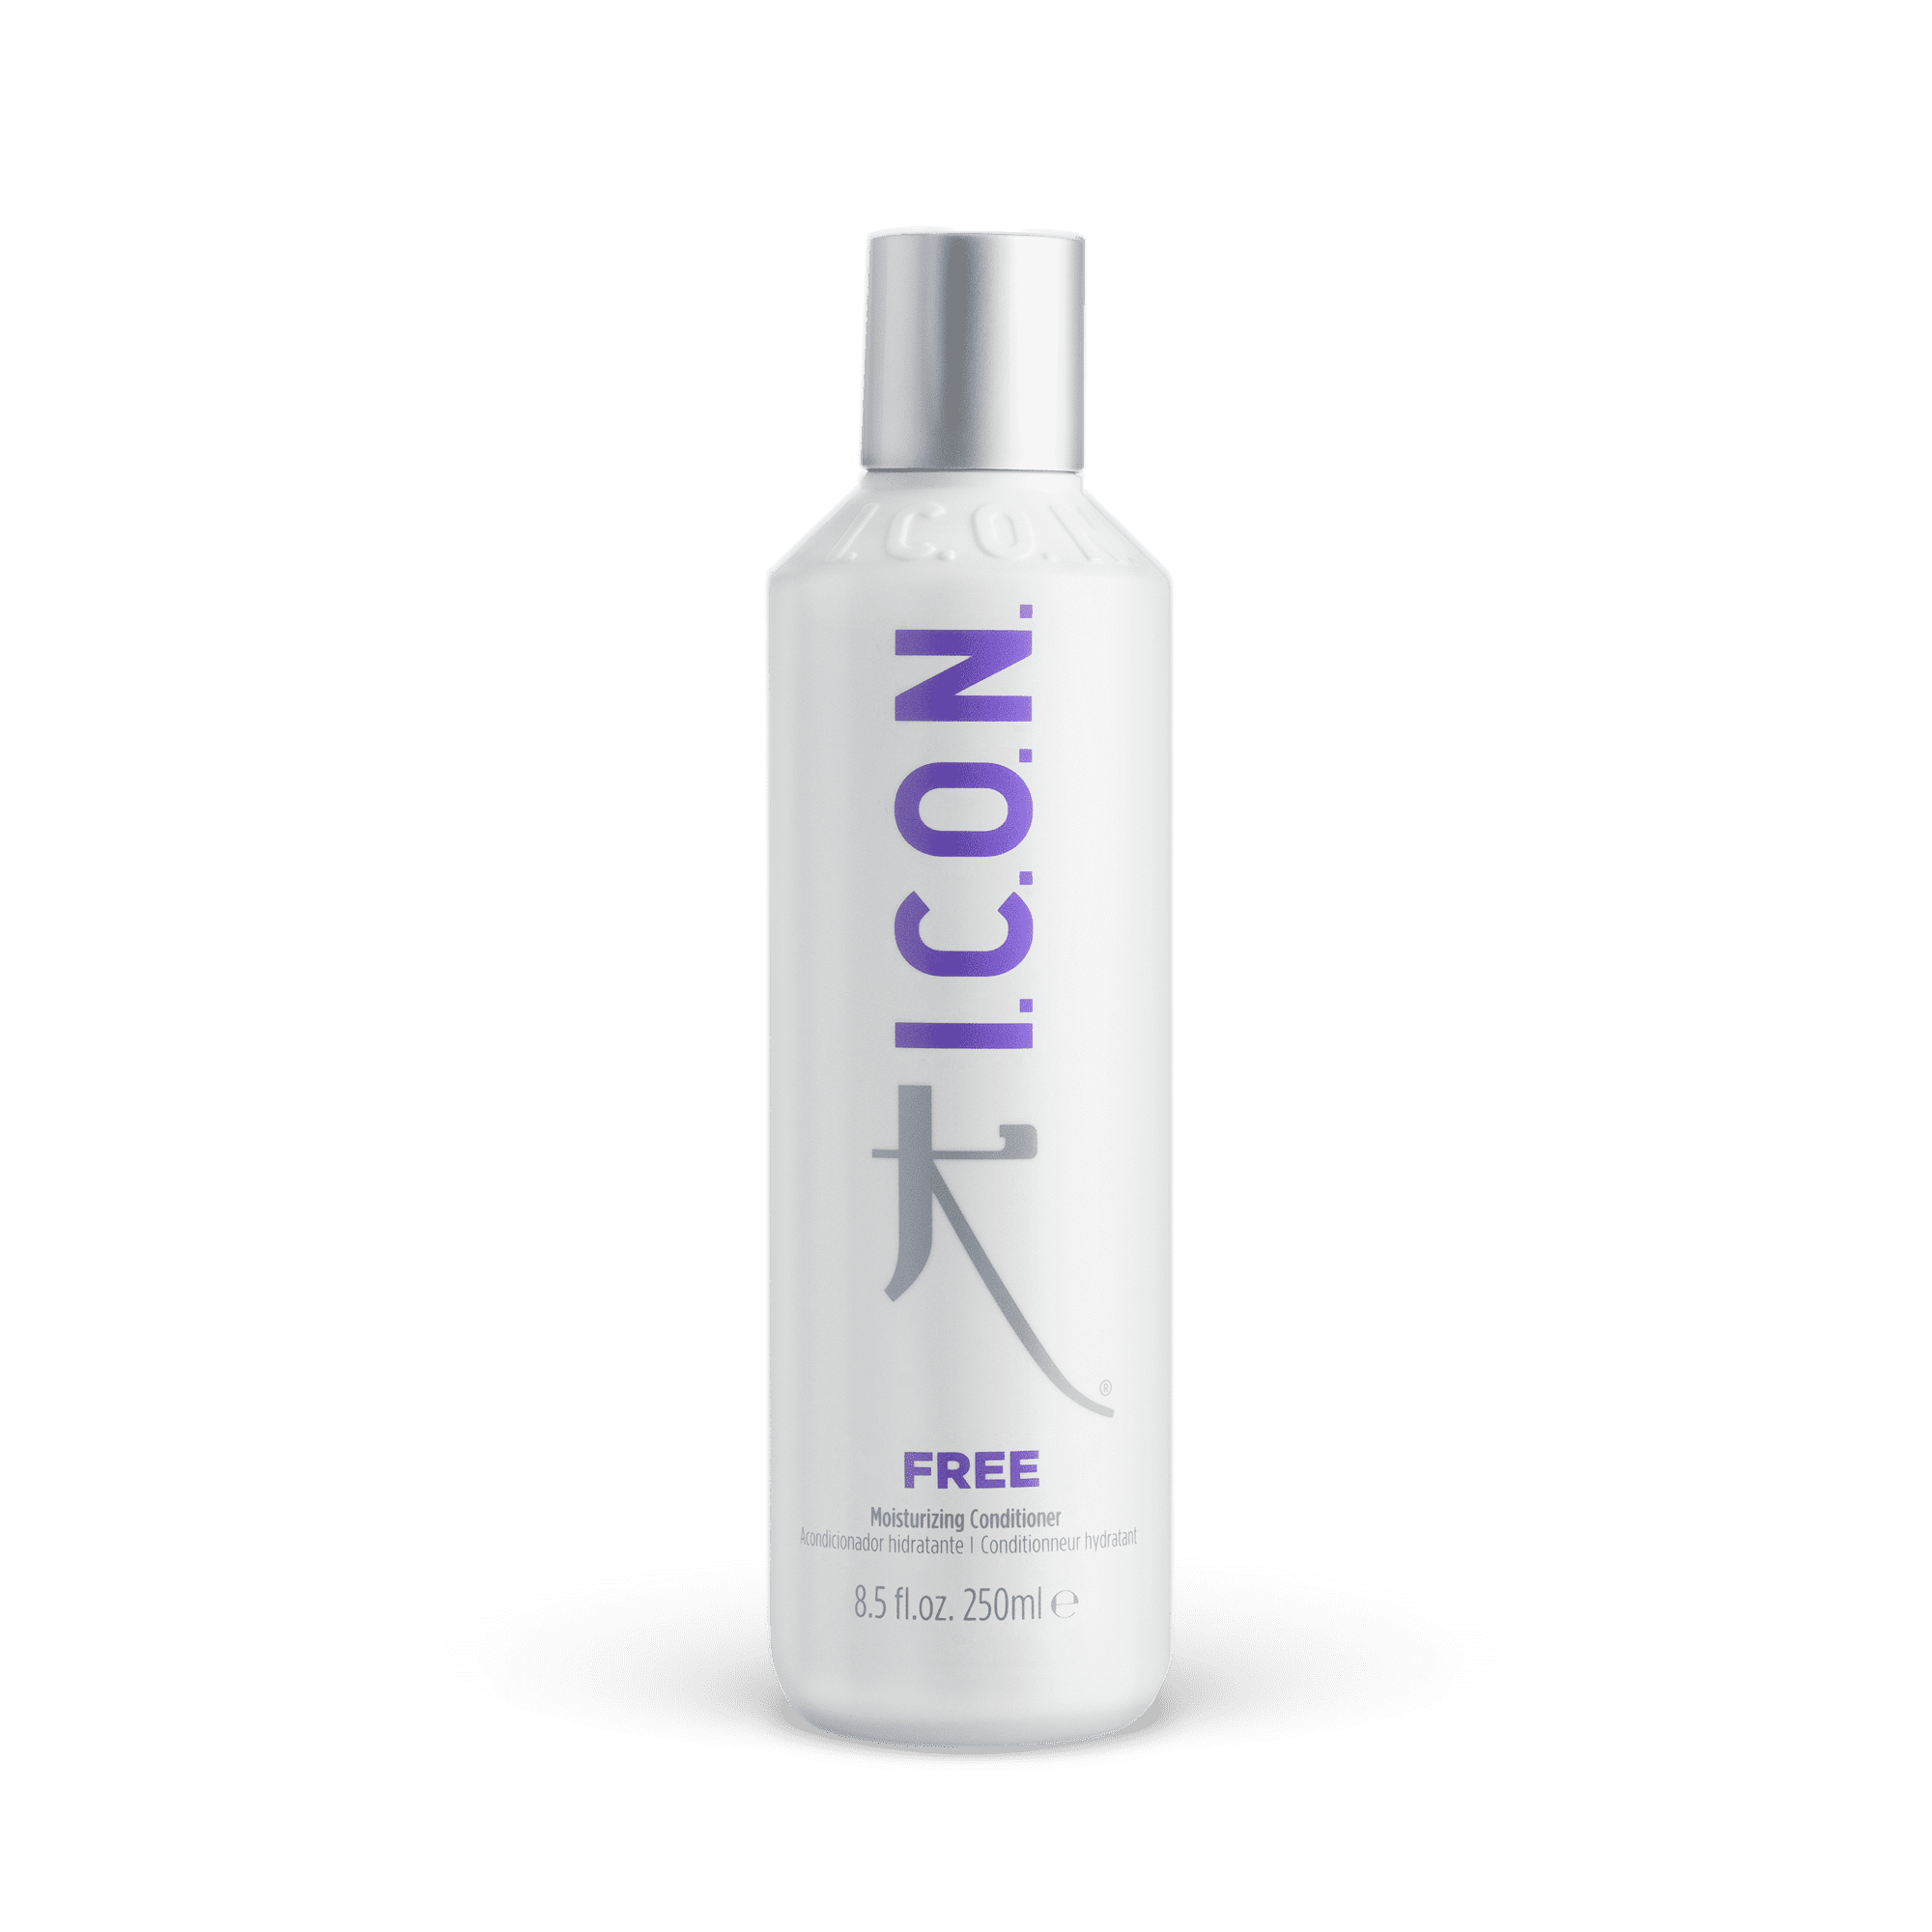 icon-products-free HYDRATER et RÉPARER